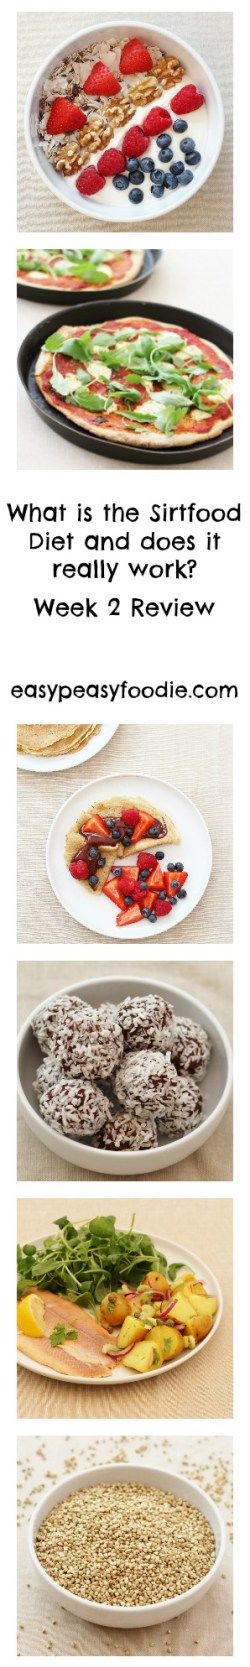 51 best sirtfood diet images on pinterest healthy eating habits what is the sirtfood diet and does it really work part 3 forumfinder Gallery